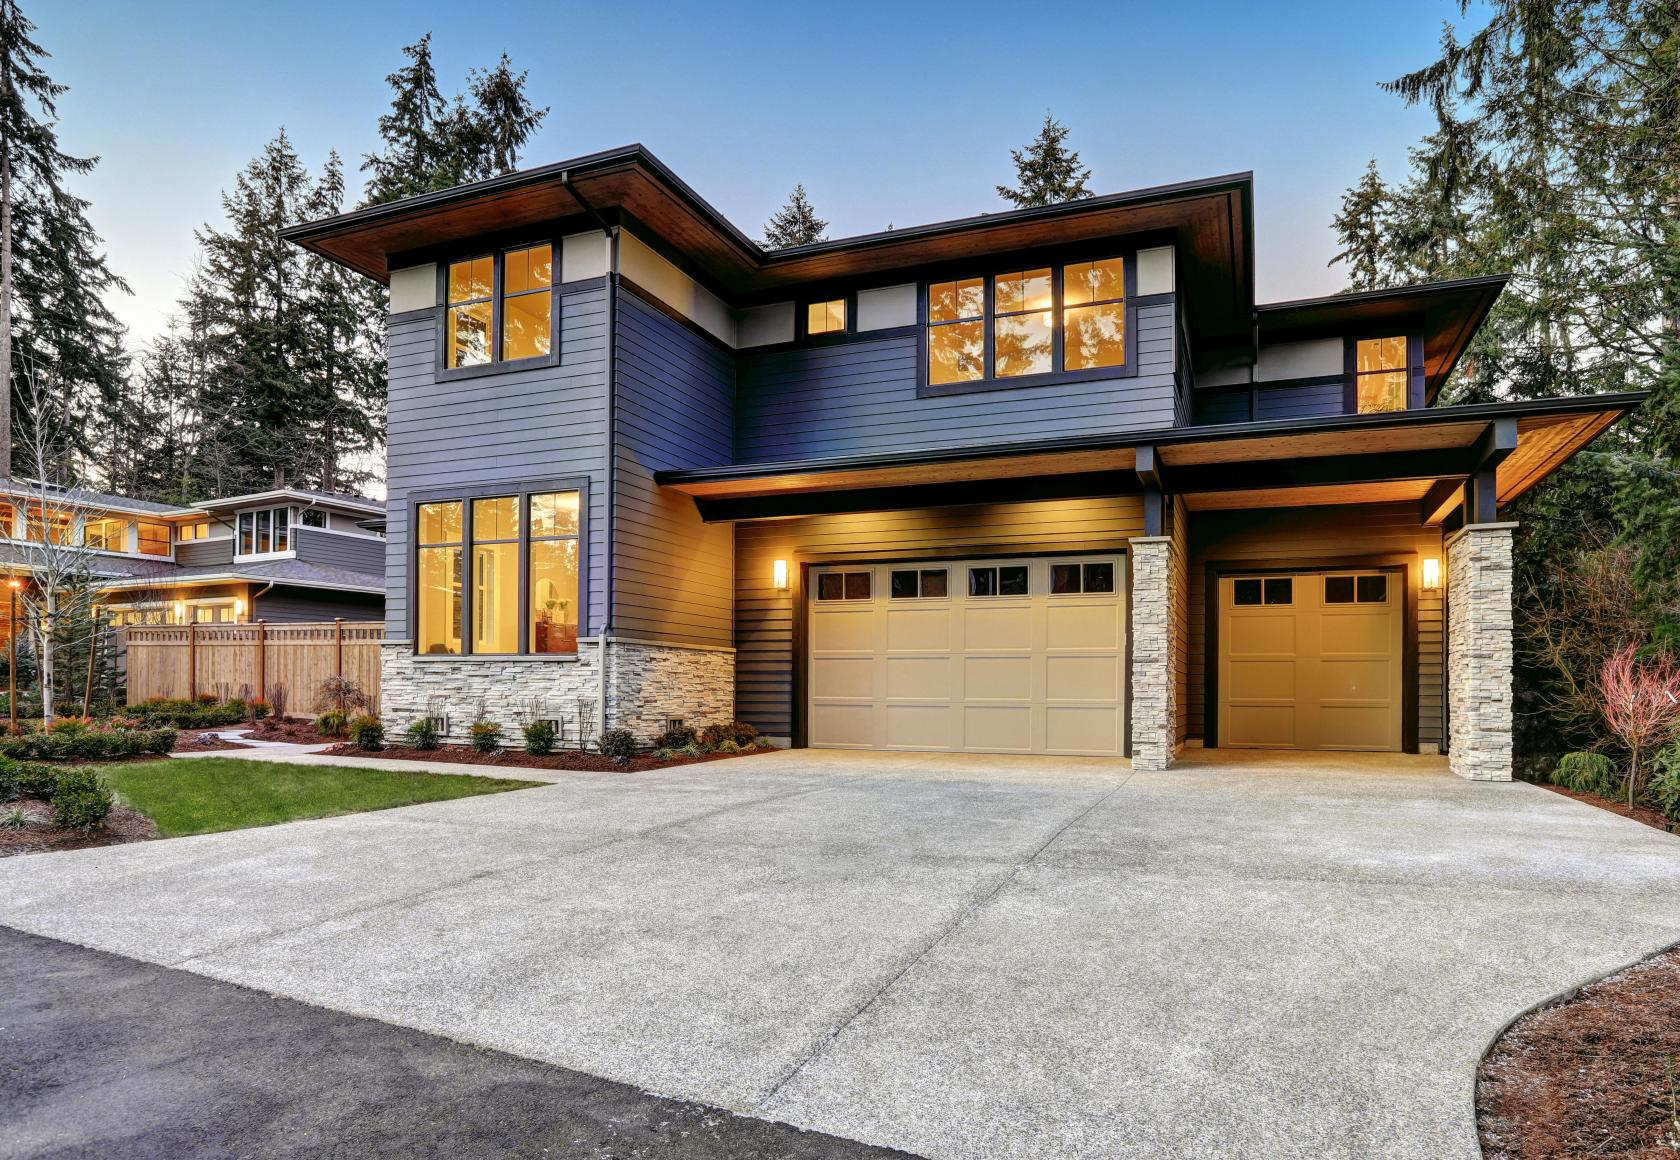 Point Grey - A Luxurious Enclave of Fine West Coast Living